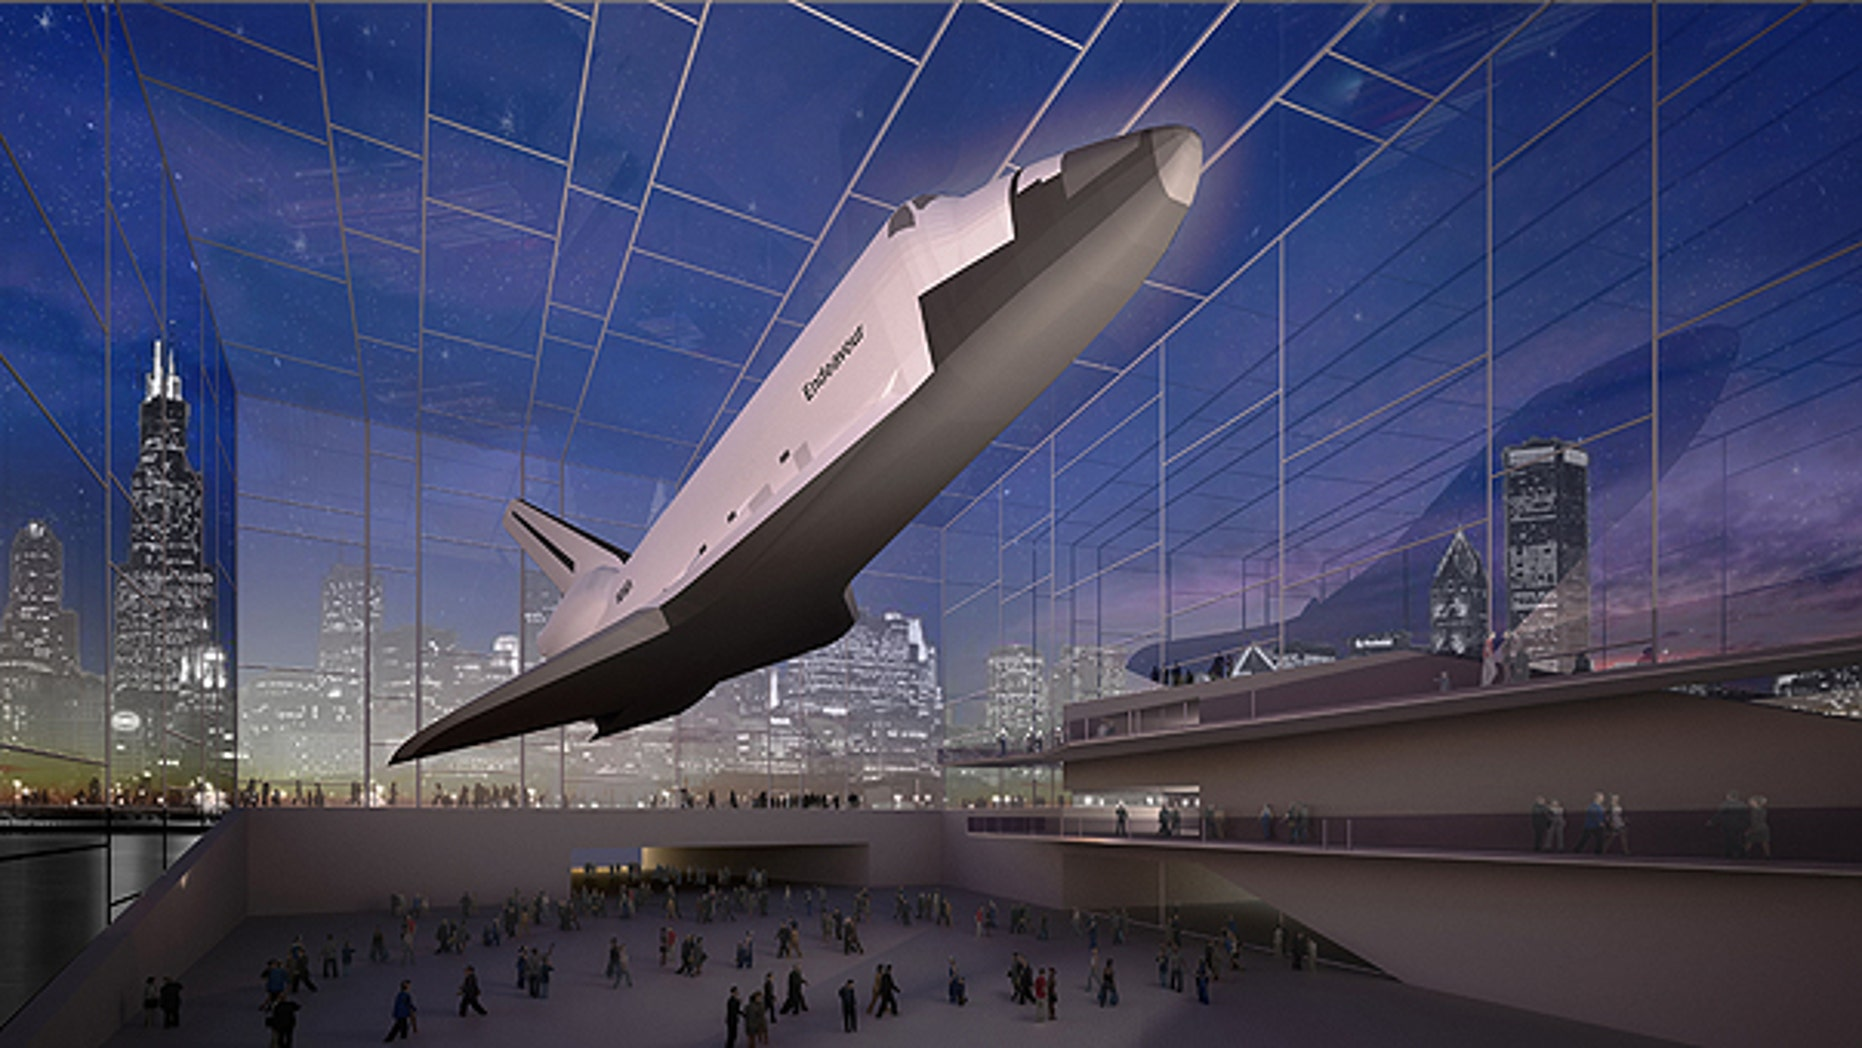 April 7: This image provided by the Adler Planetarium shows a proposal for a space shuttle exhibit in Chicago.